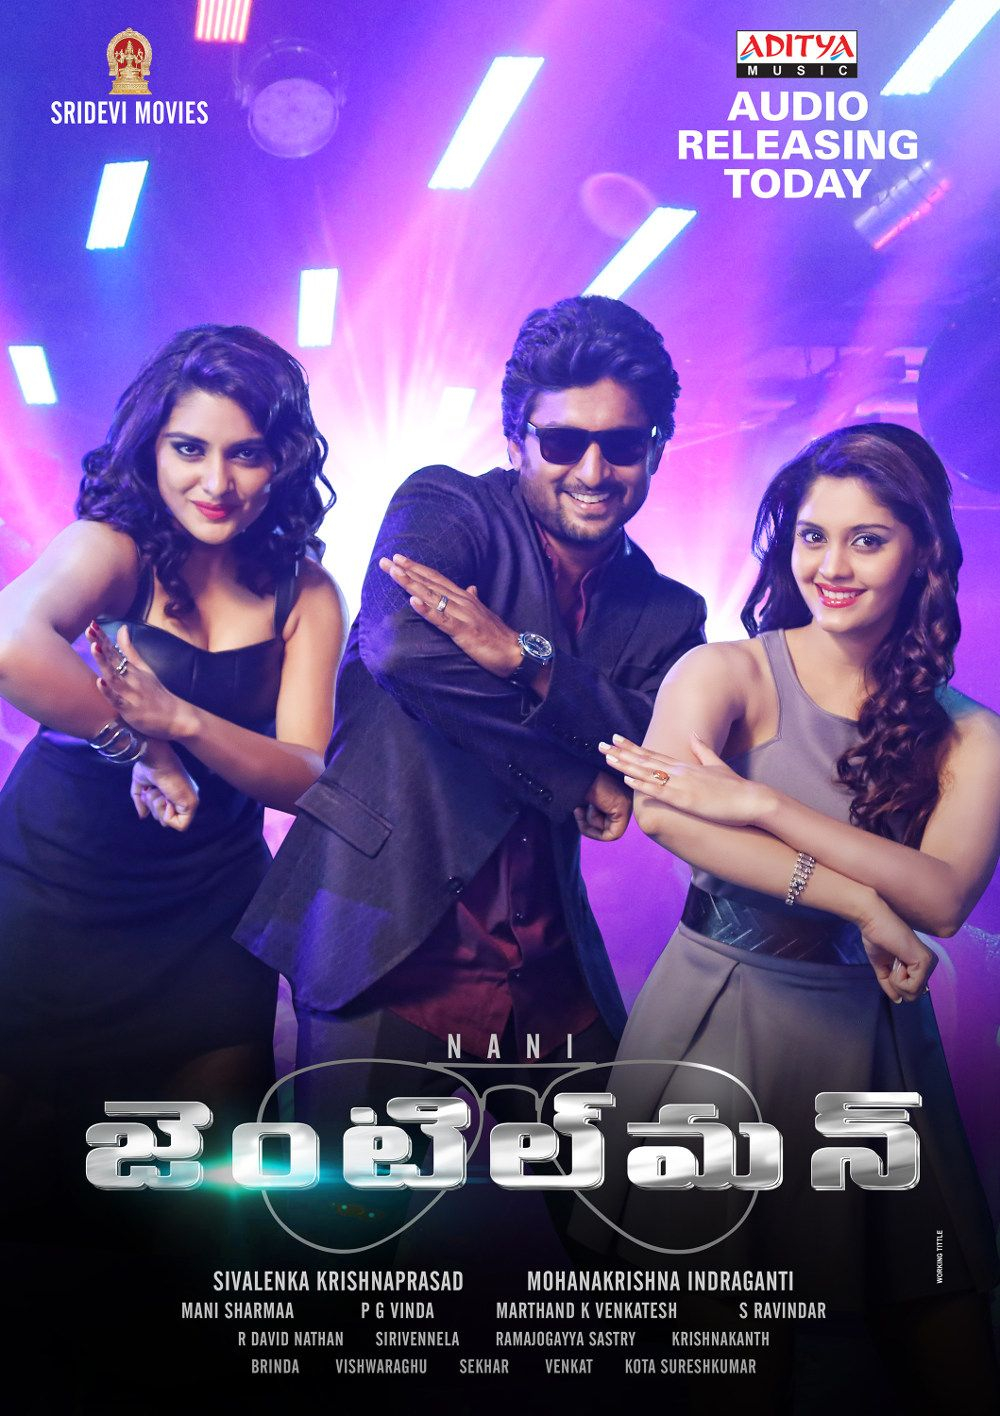 nani movie songs ringtones free download